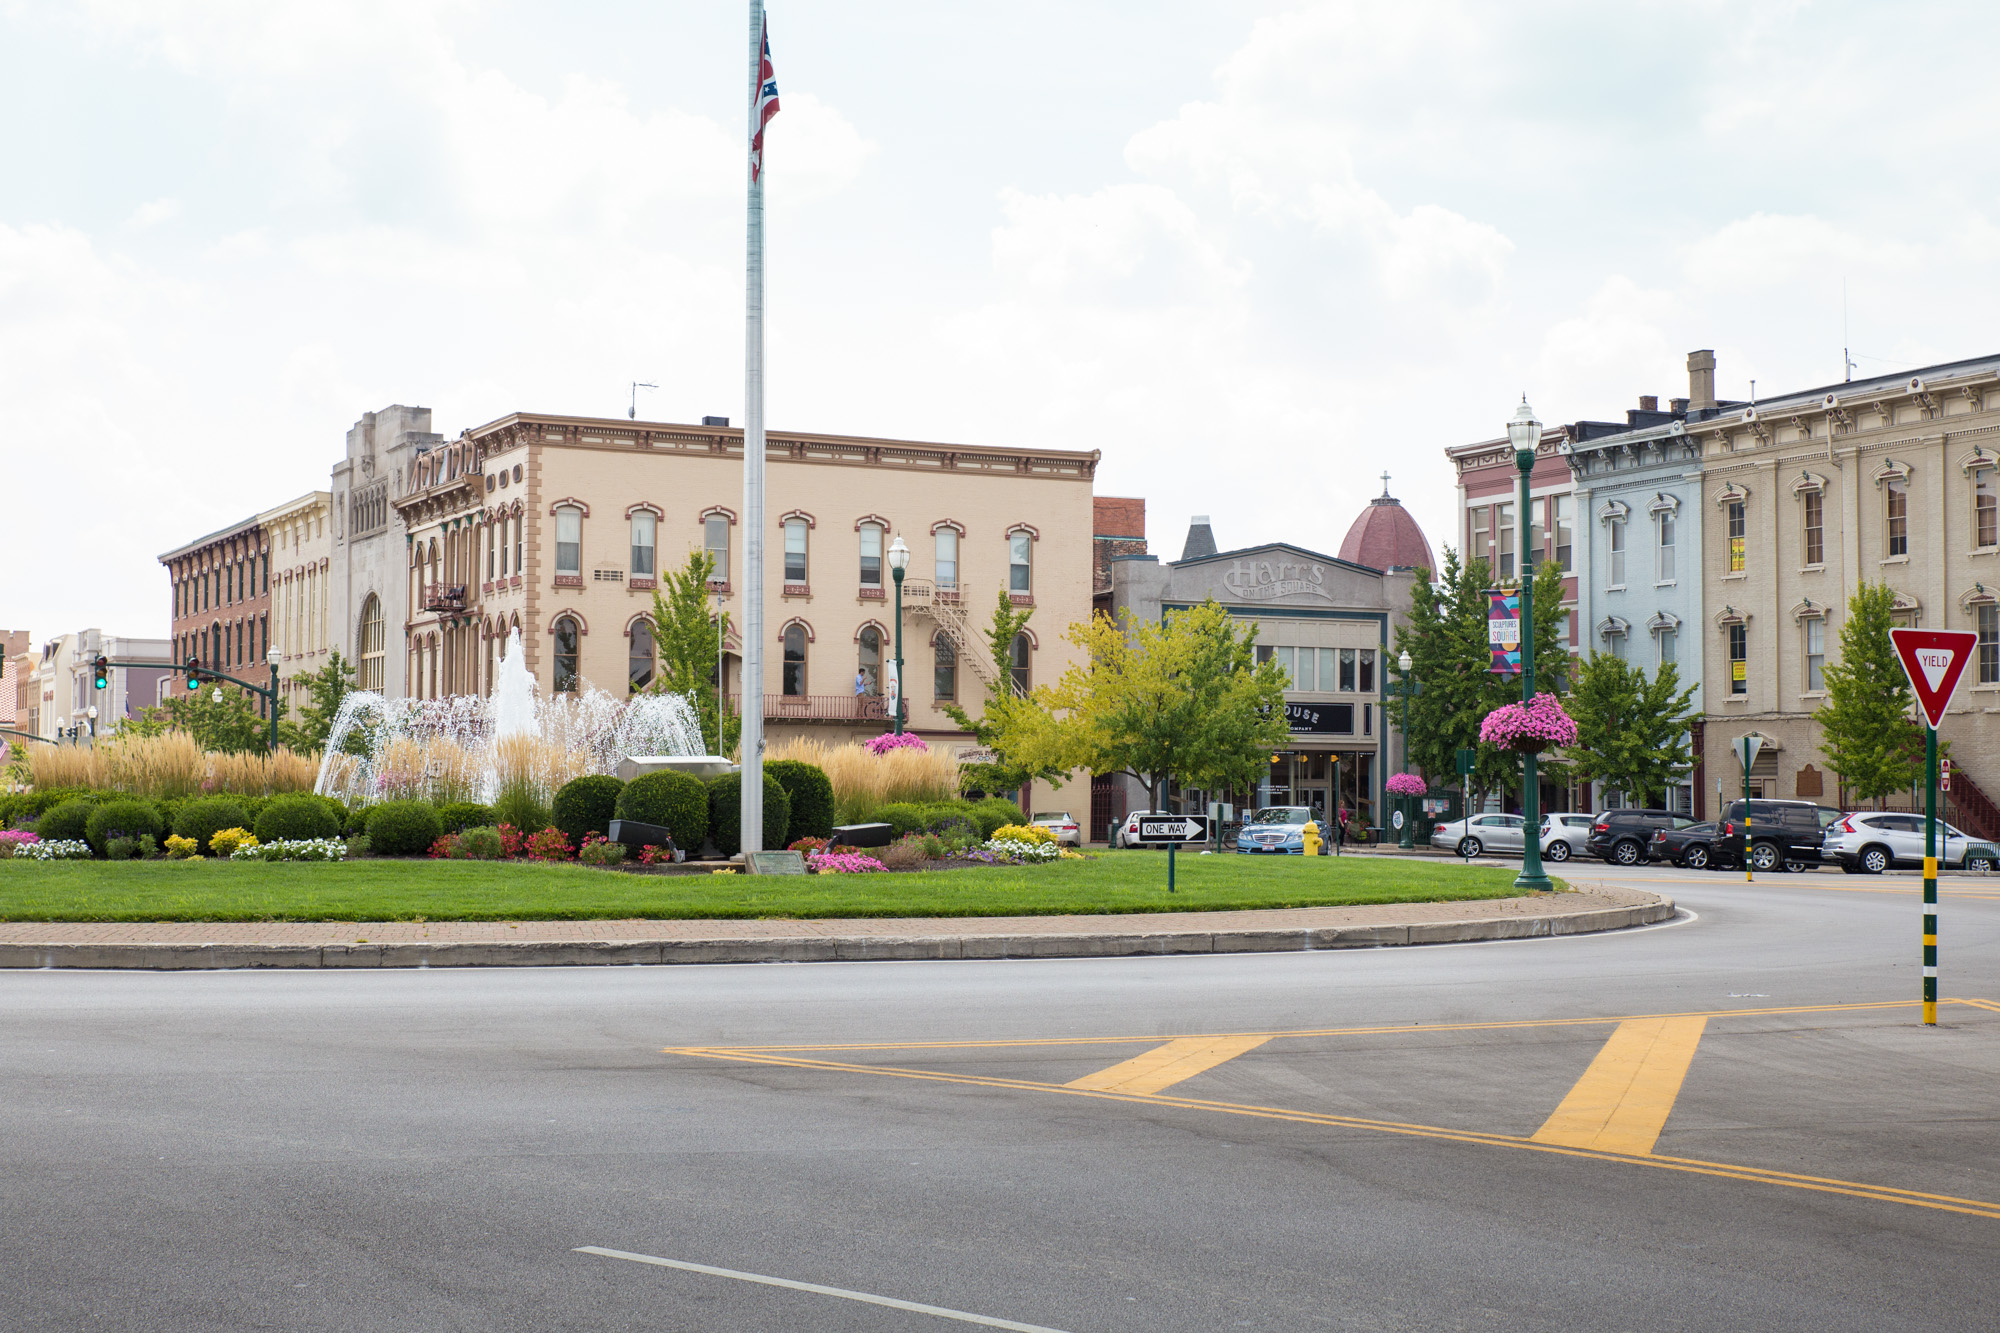 Troy, Ohio Homes for Sale and Area Information